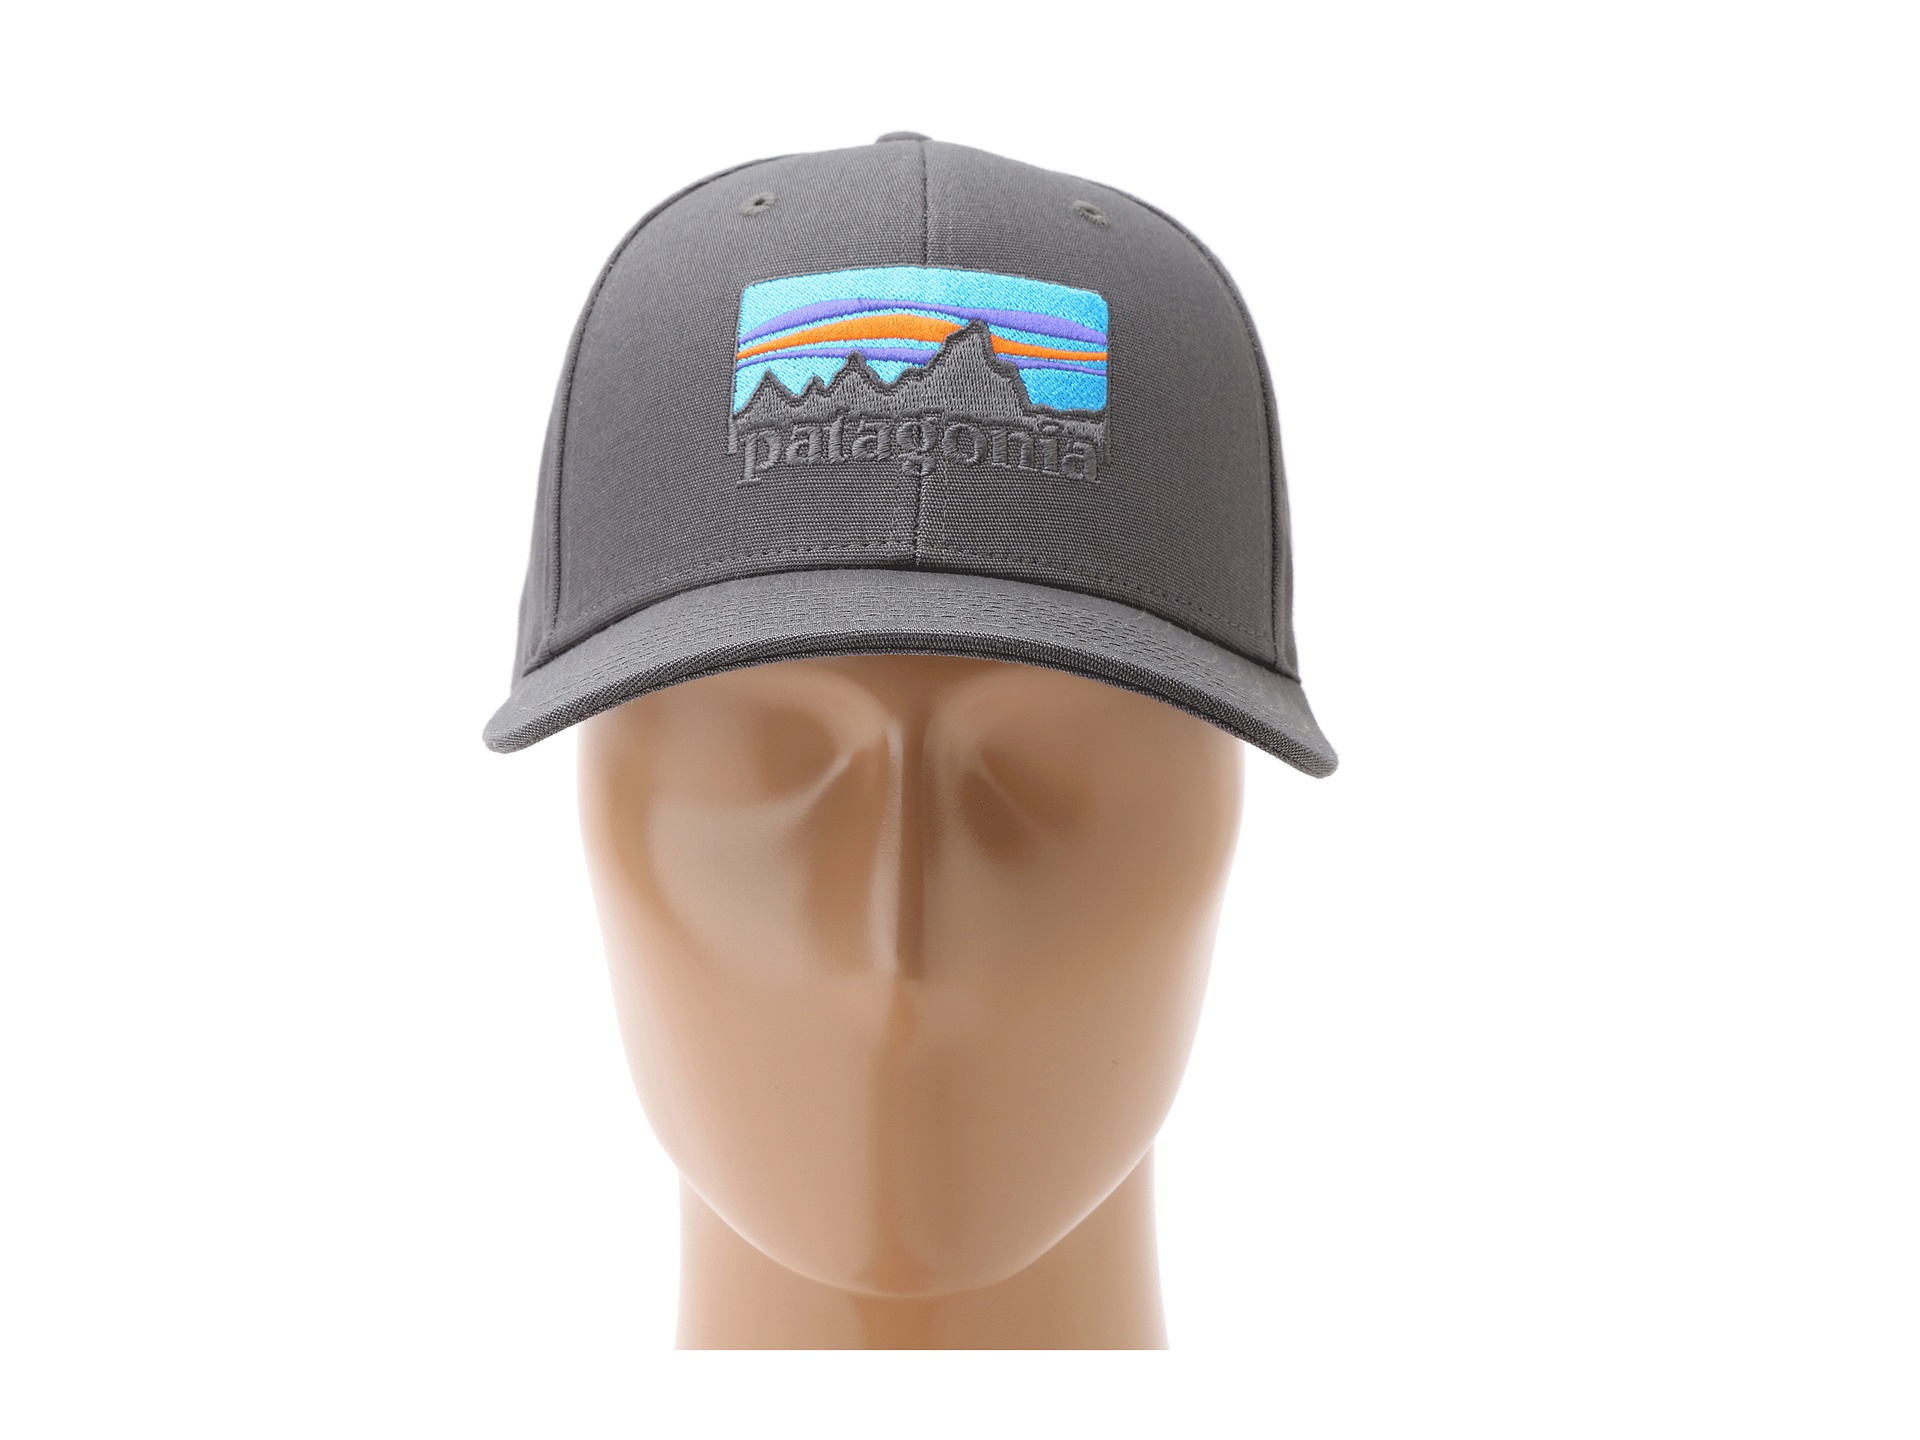 Lyst - Patagonia Roger That Hat in Gray 3efe29ec838